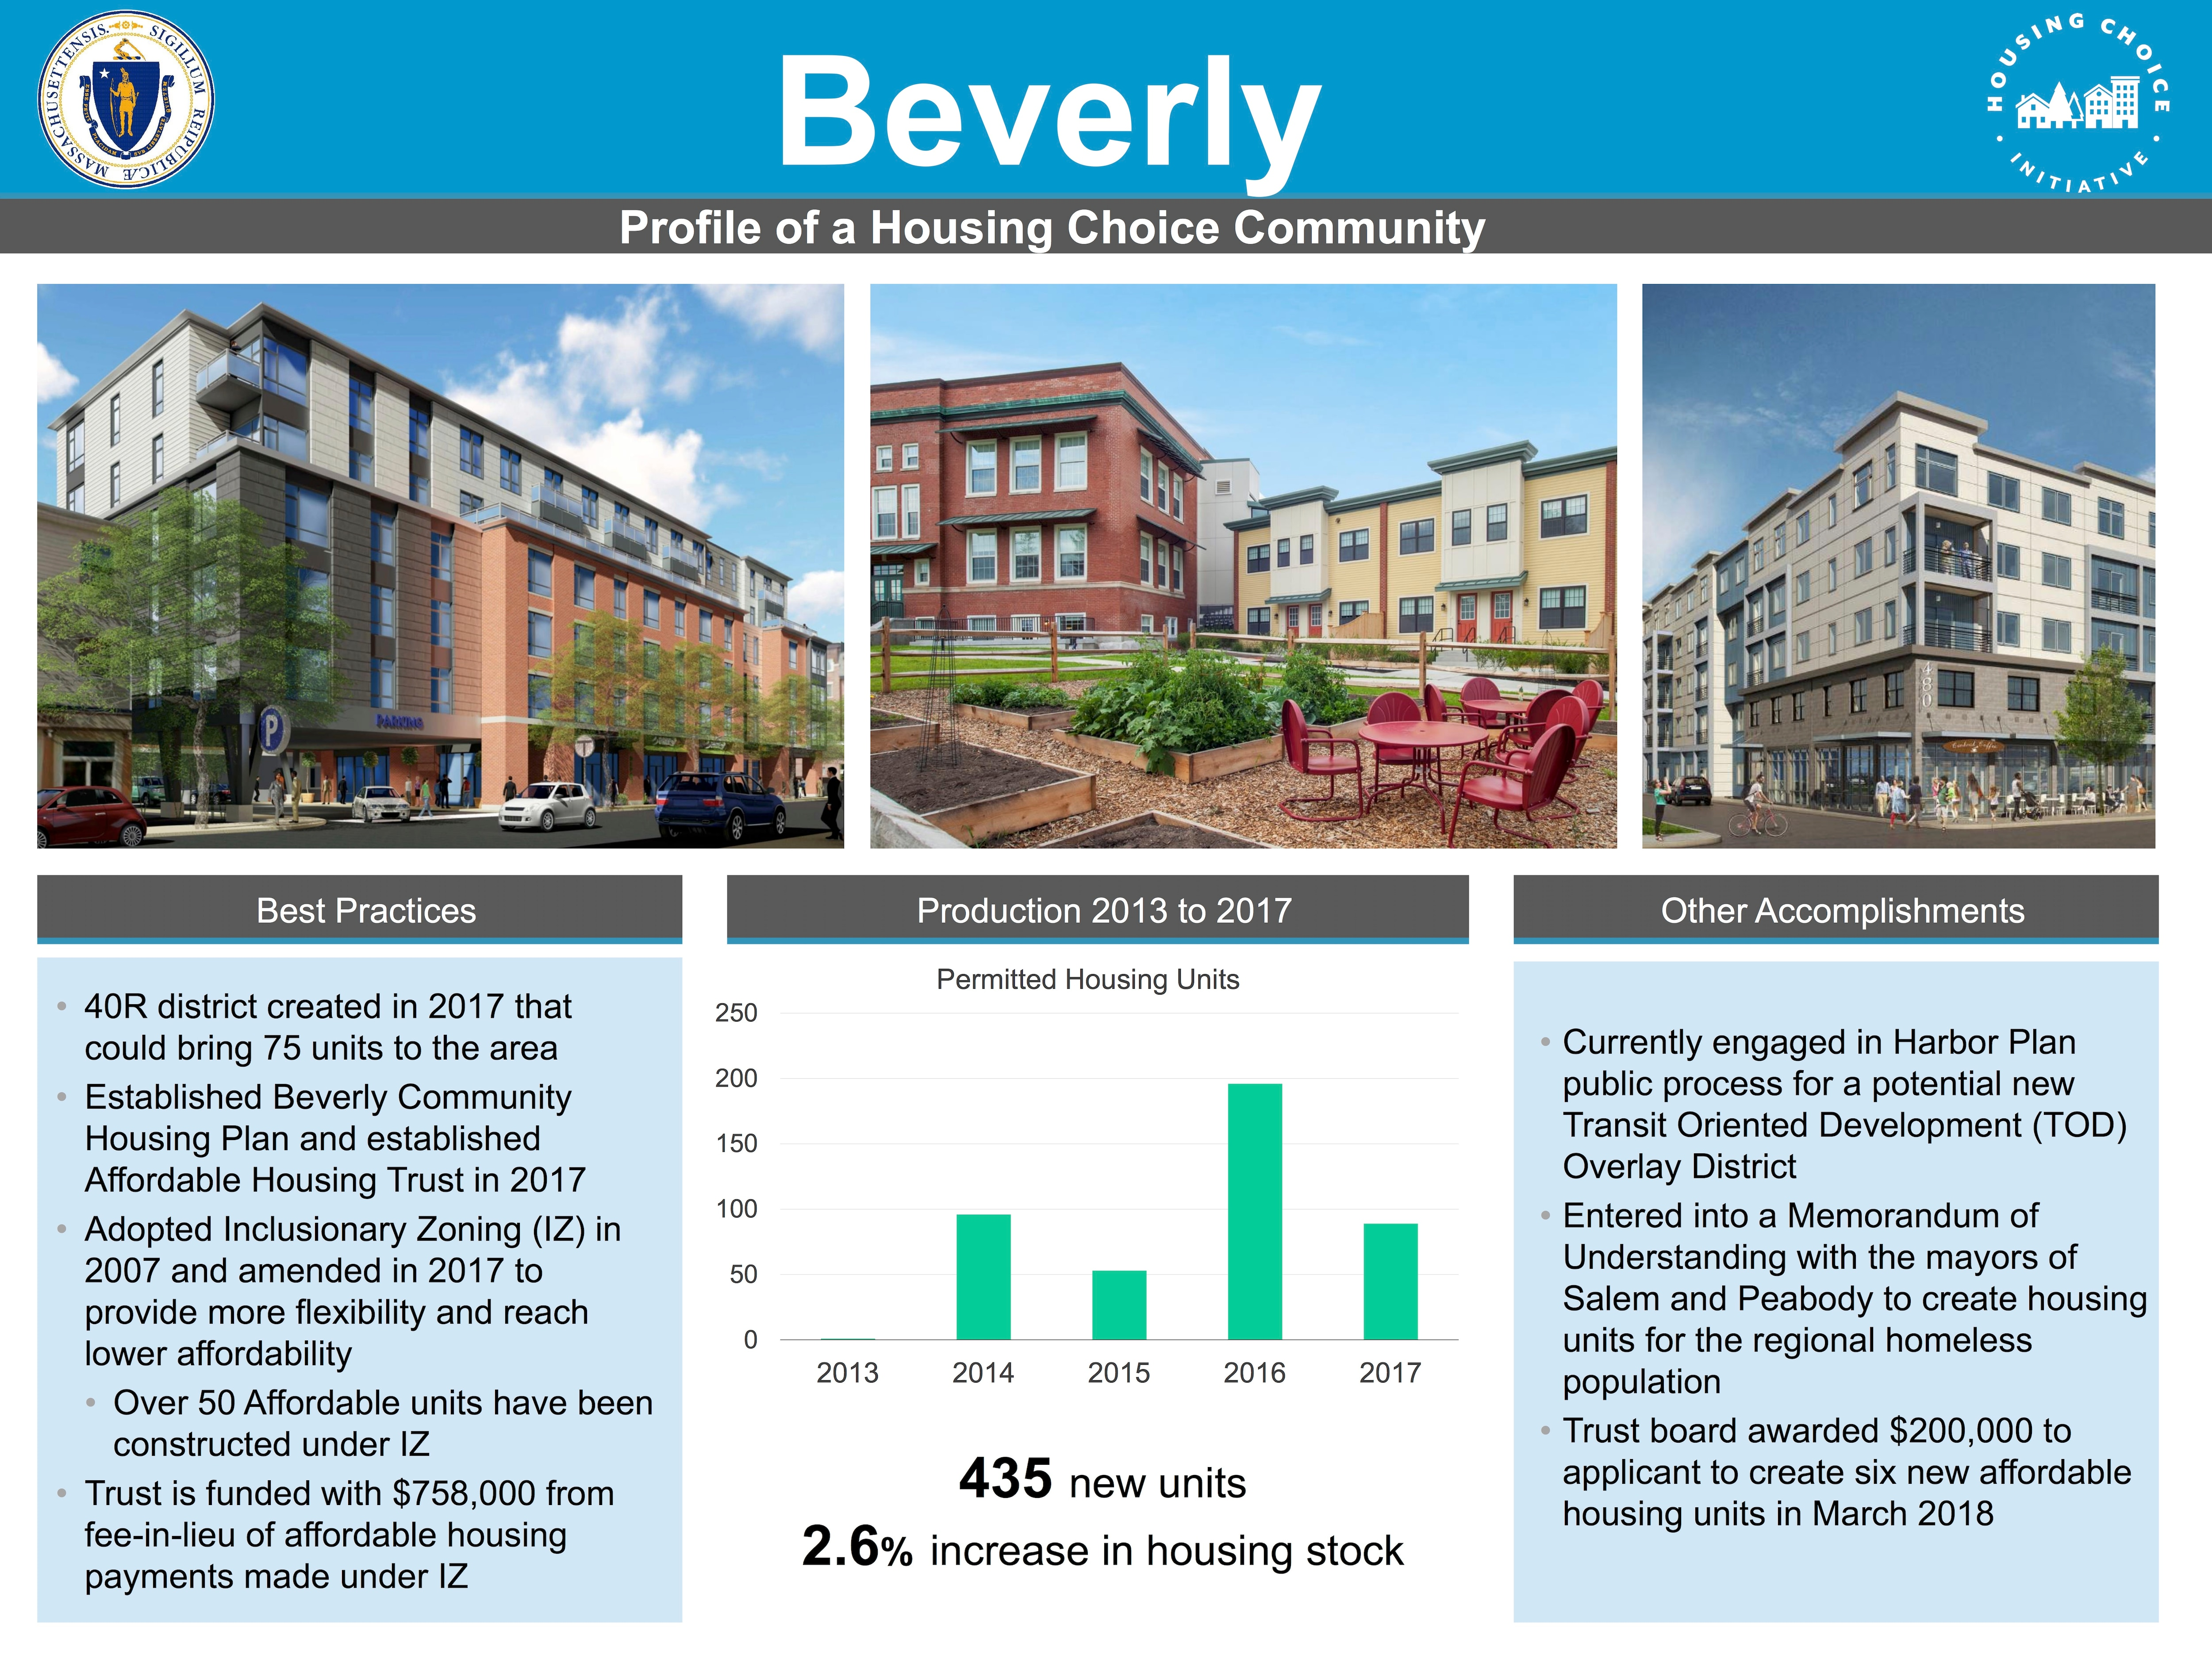 Profile of a Housing Choice Community - Beverly